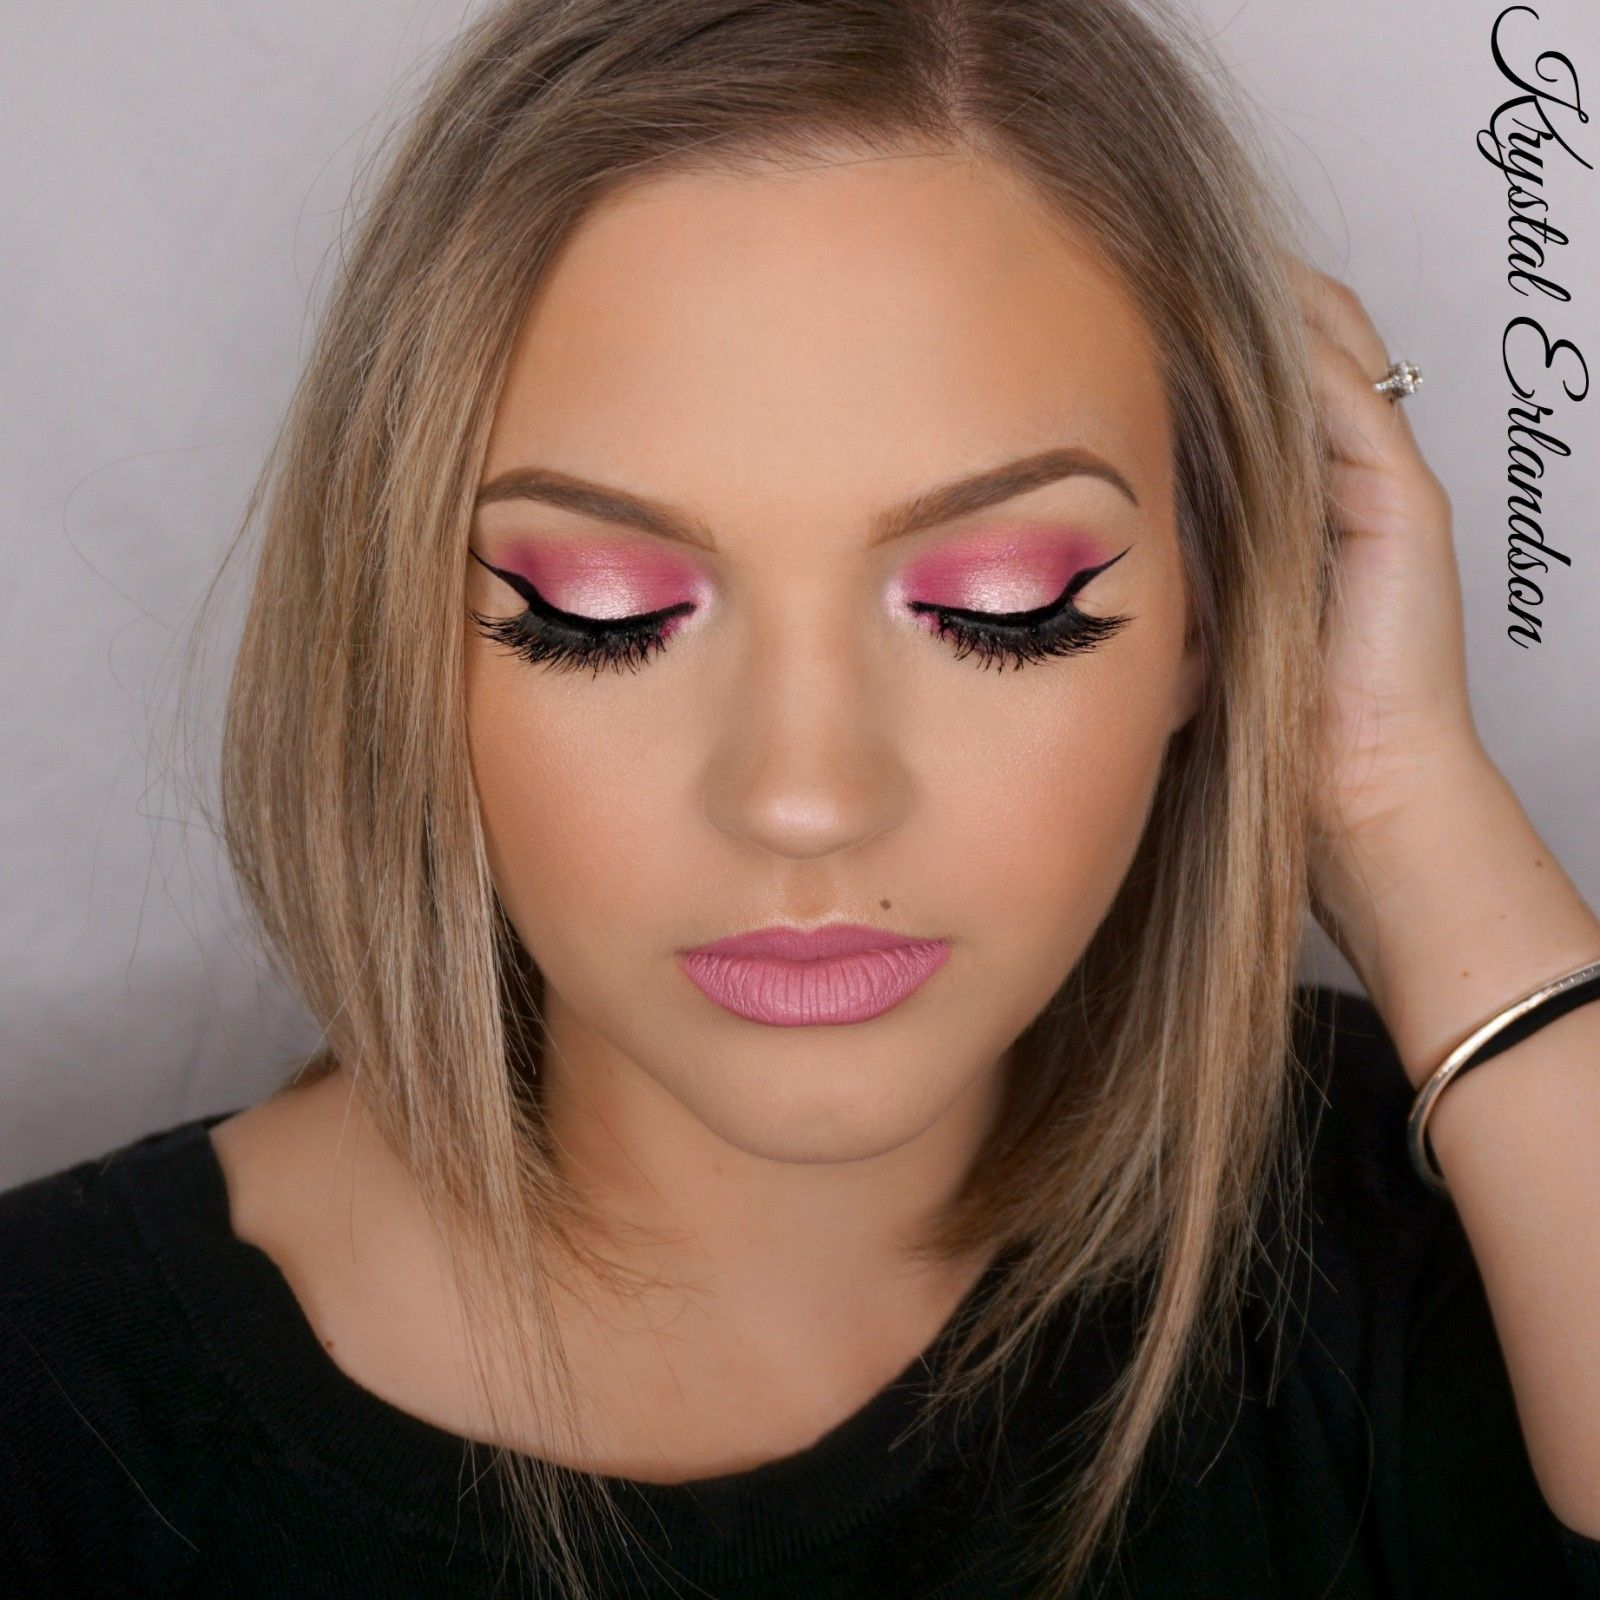 Pink smokey halo eyes makeup tutorial makeup geek krystal pink smokey halo eyes makeup tutorial makeup geek baditri Choice Image